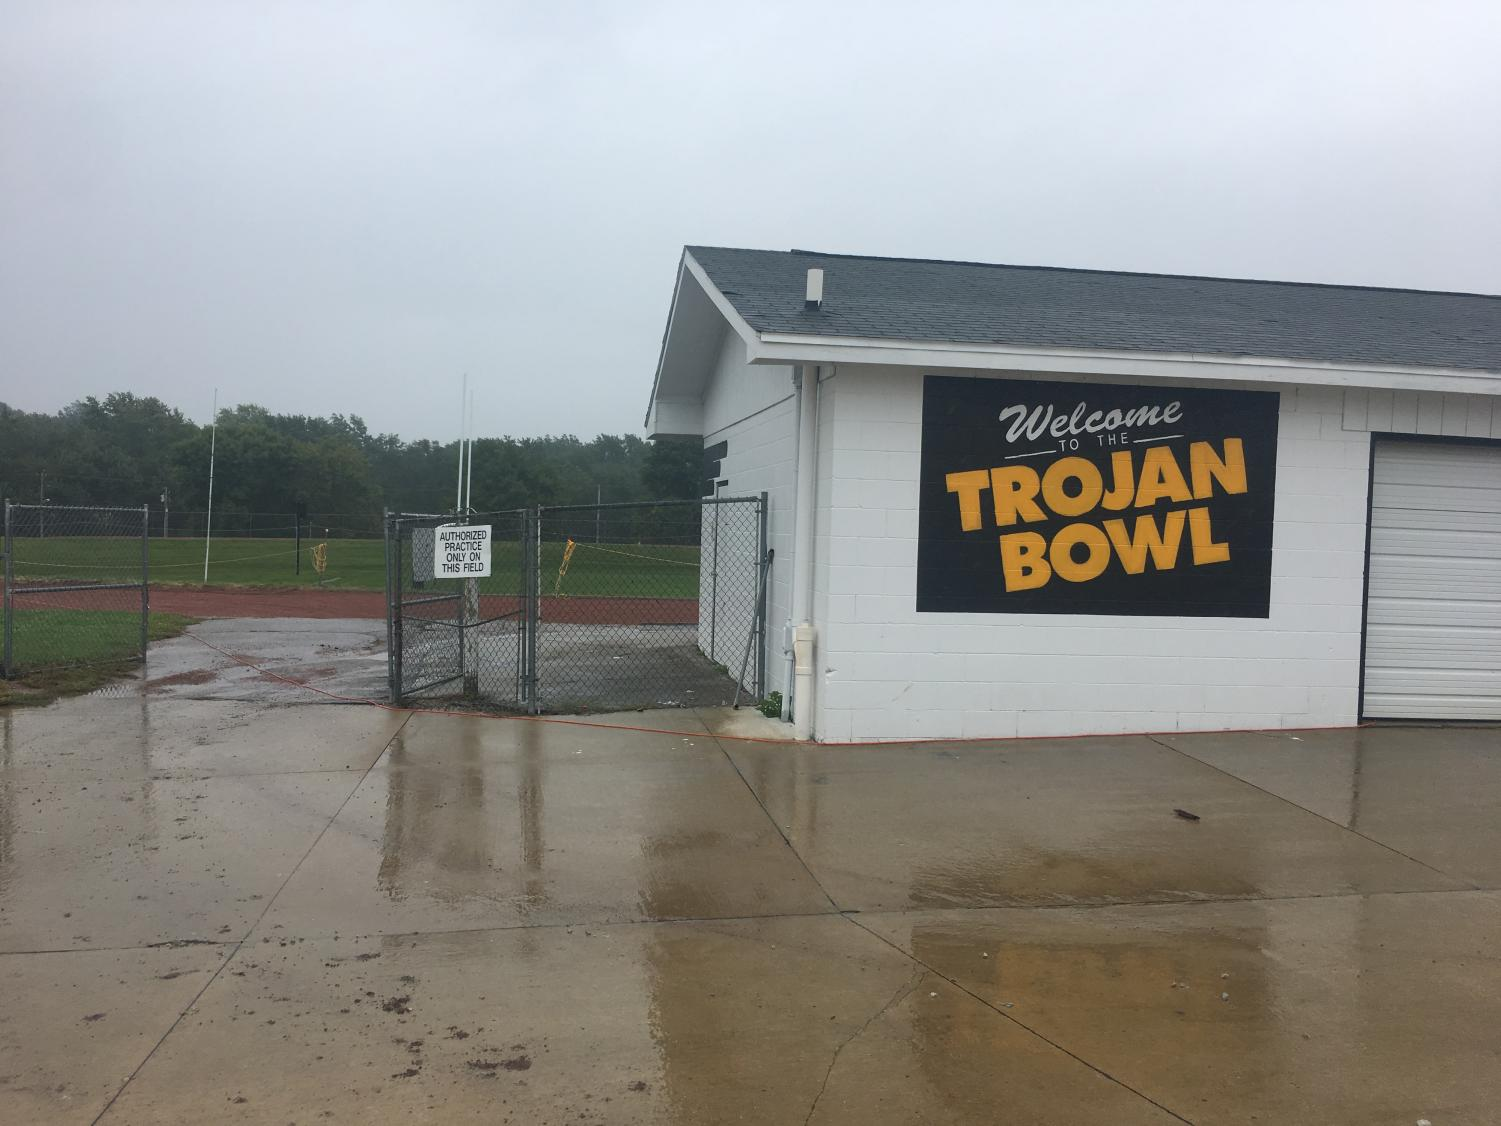 The Trojan Bowl will host the Oct. 5 showing of